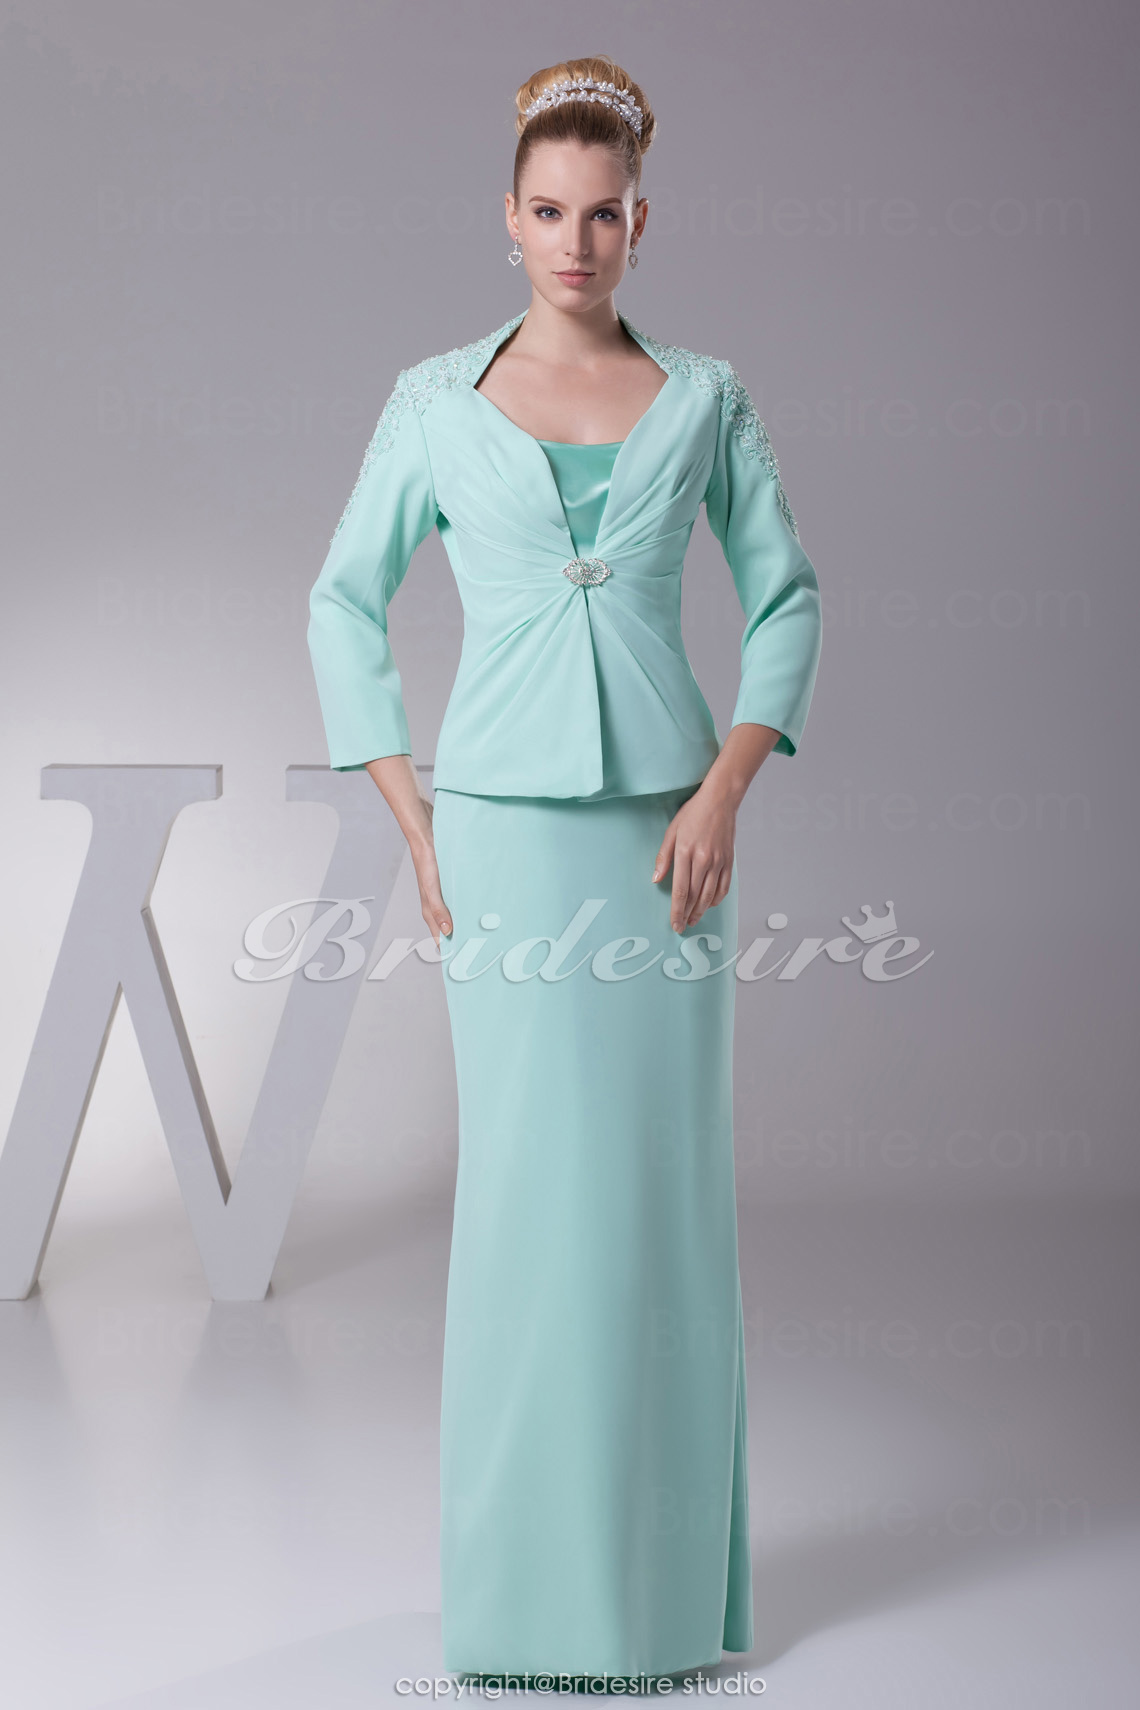 Sheath/Column Spaghetti Straps Floor-length 3/4 Length Sleeve Ch